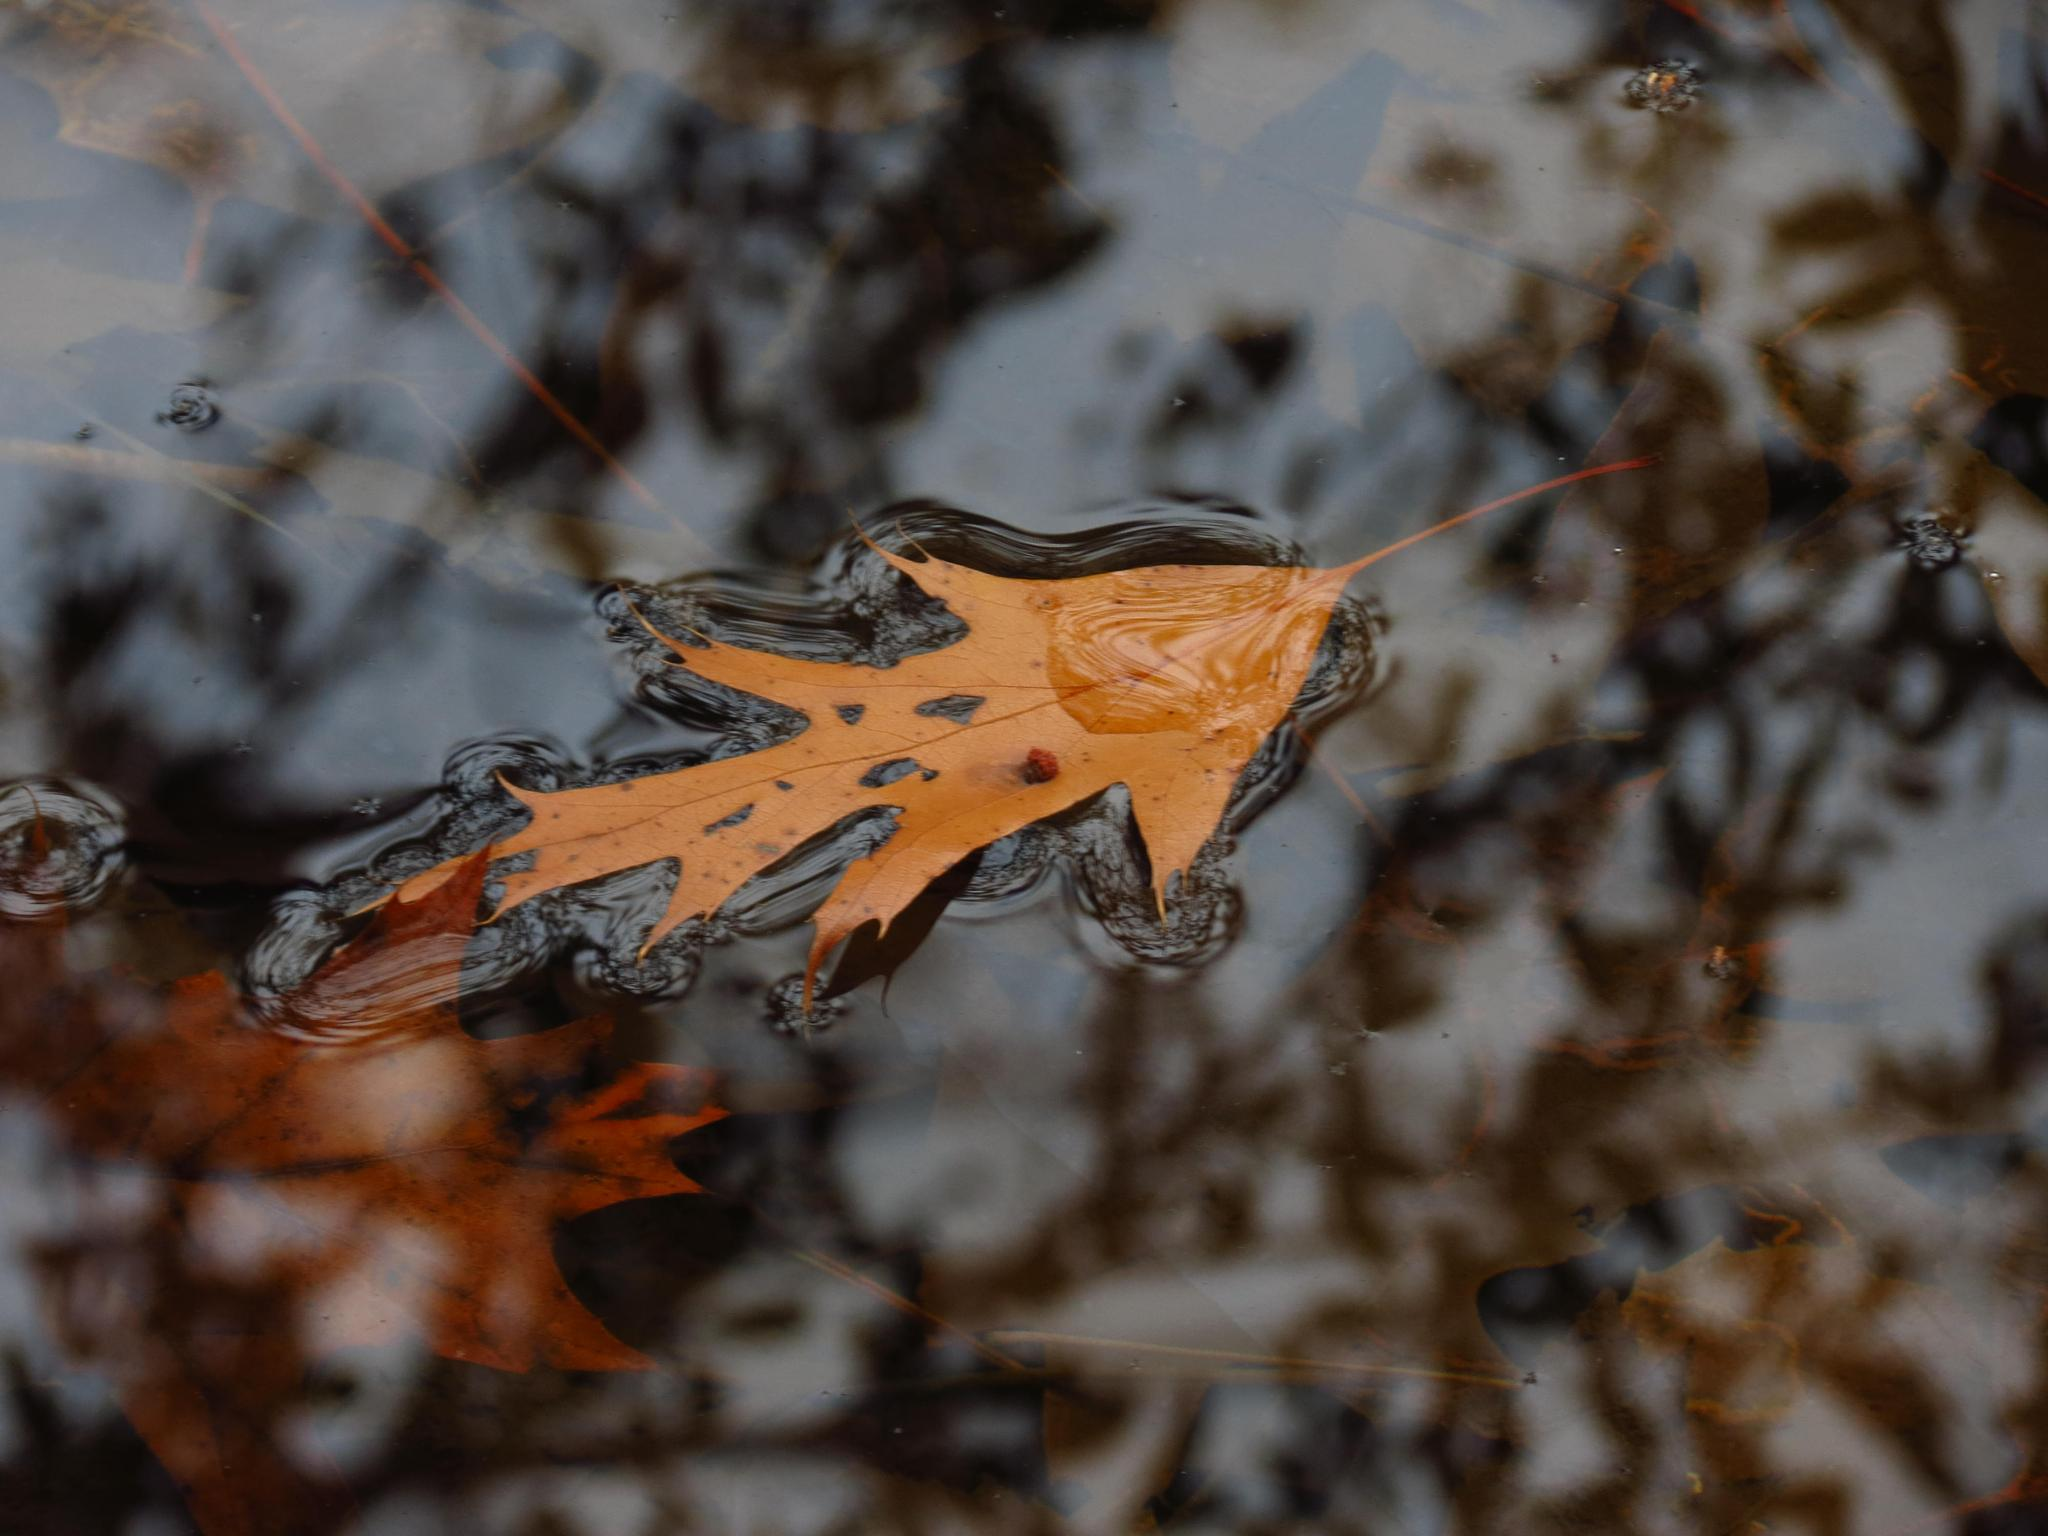 Floater by sweiland